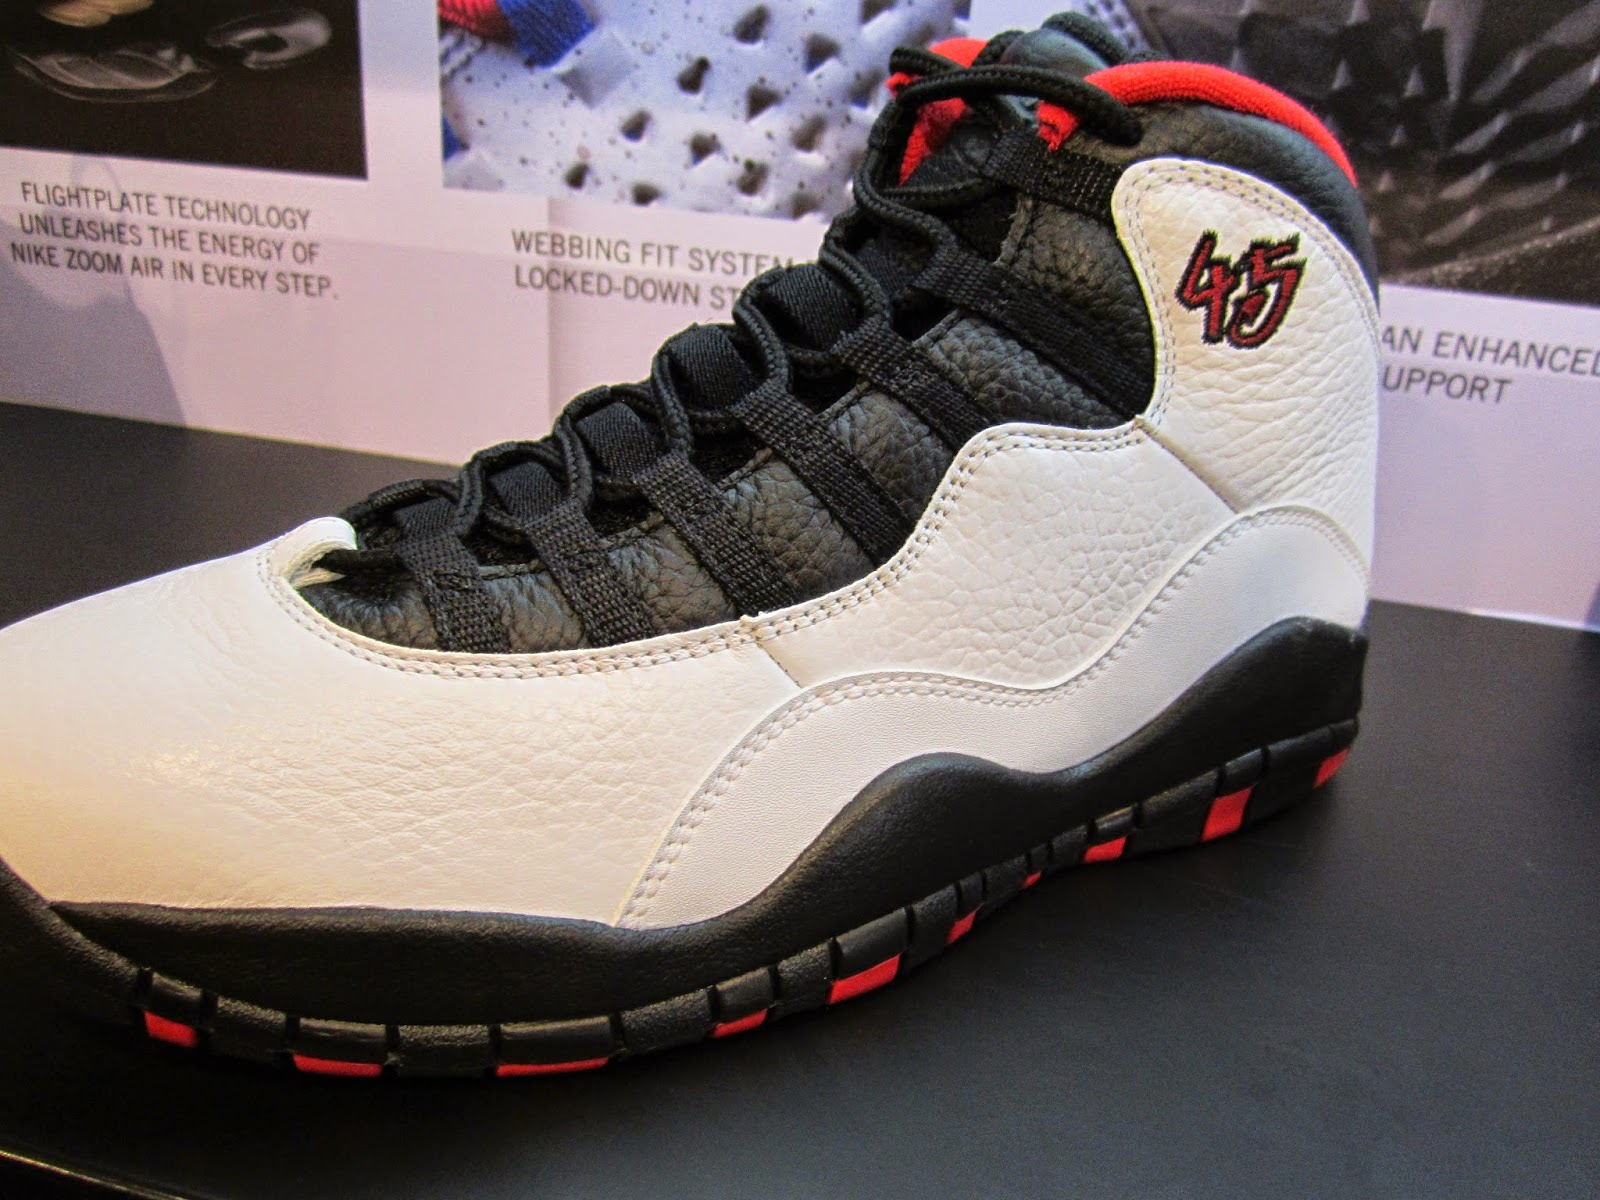 501e03b22c2 ... available in full family sizing so if you are planning to cop a Jordan  for you and for your kids